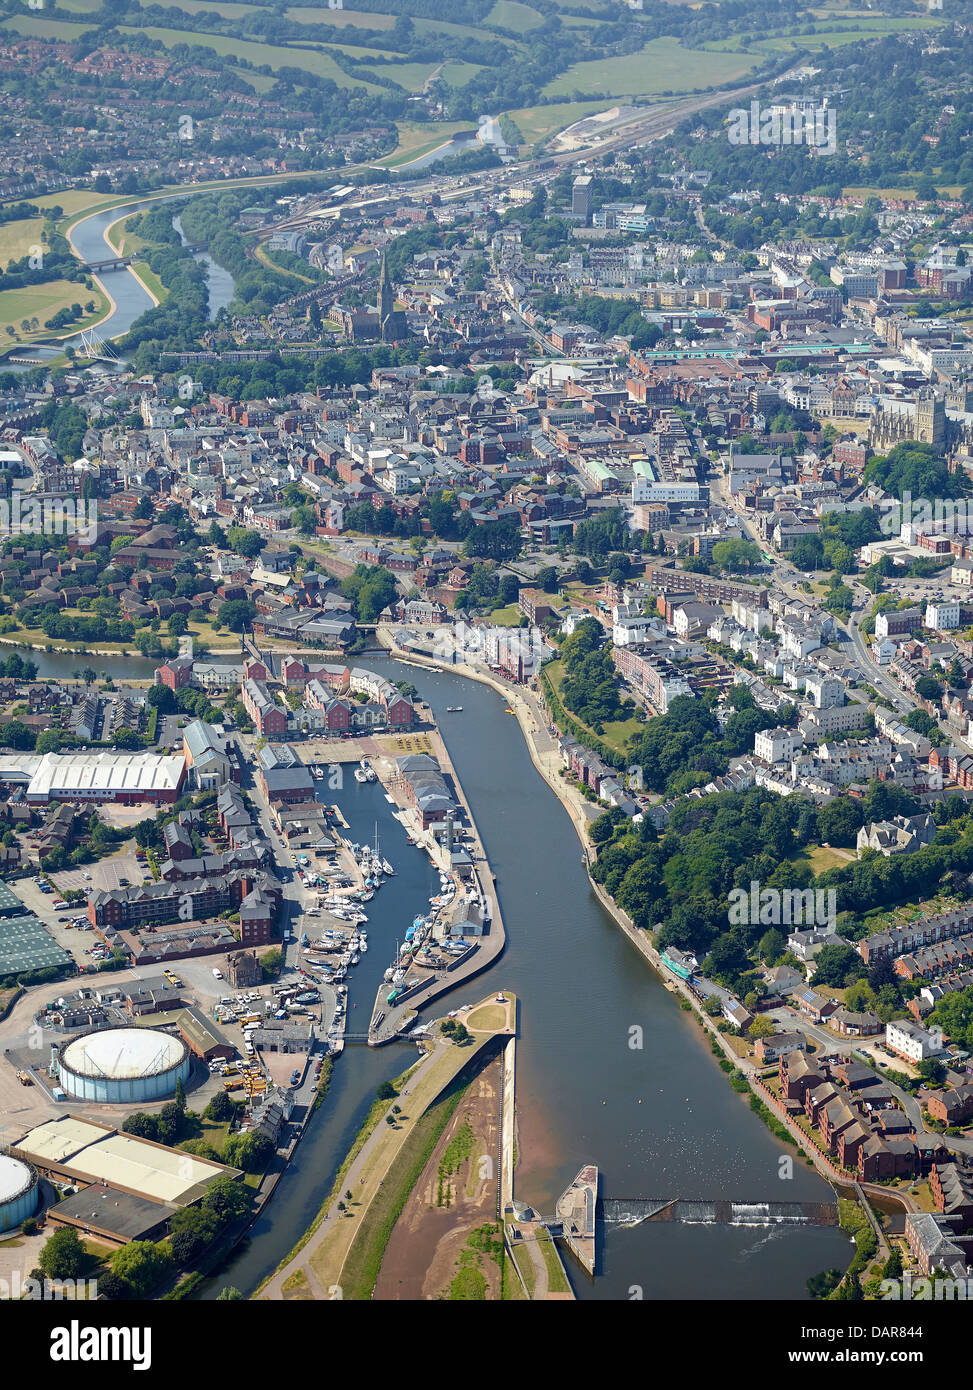 Exeter City centre with the river Exe, South West England, UK - Stock Image